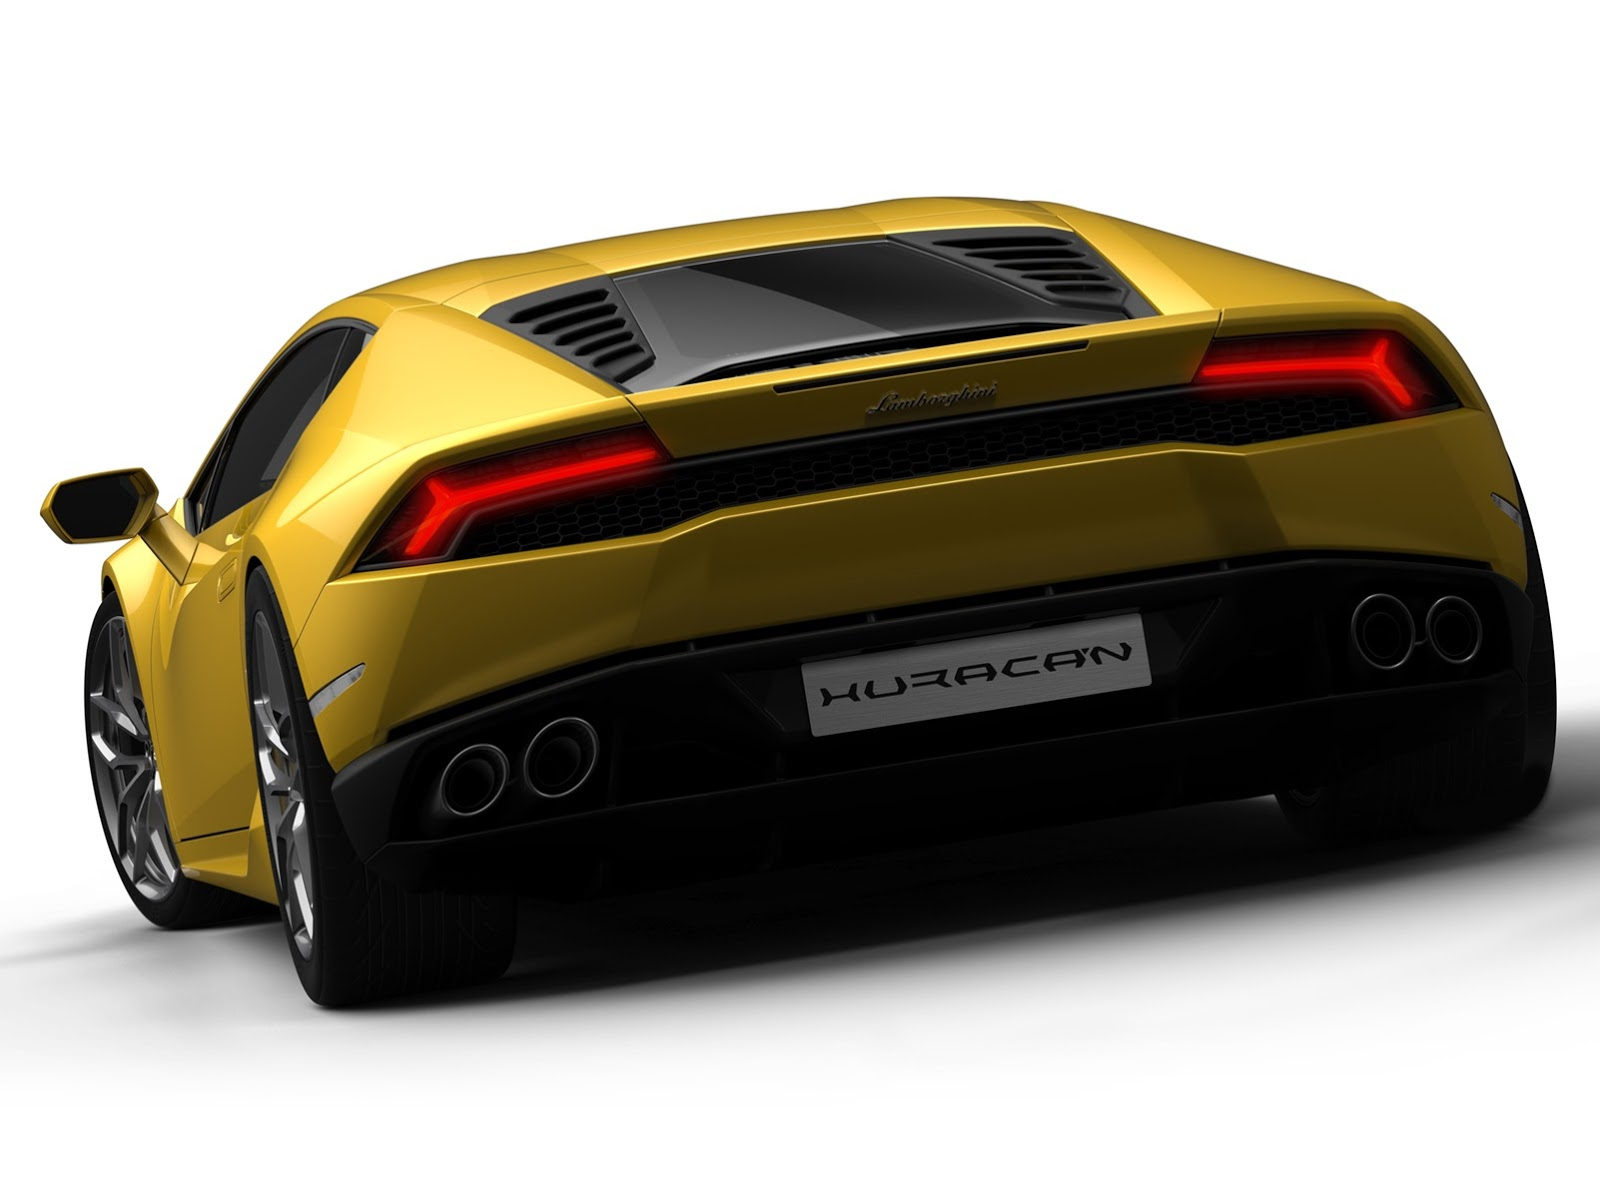 New-Lamborghini-Huracan-LP-610-4-pics-rear